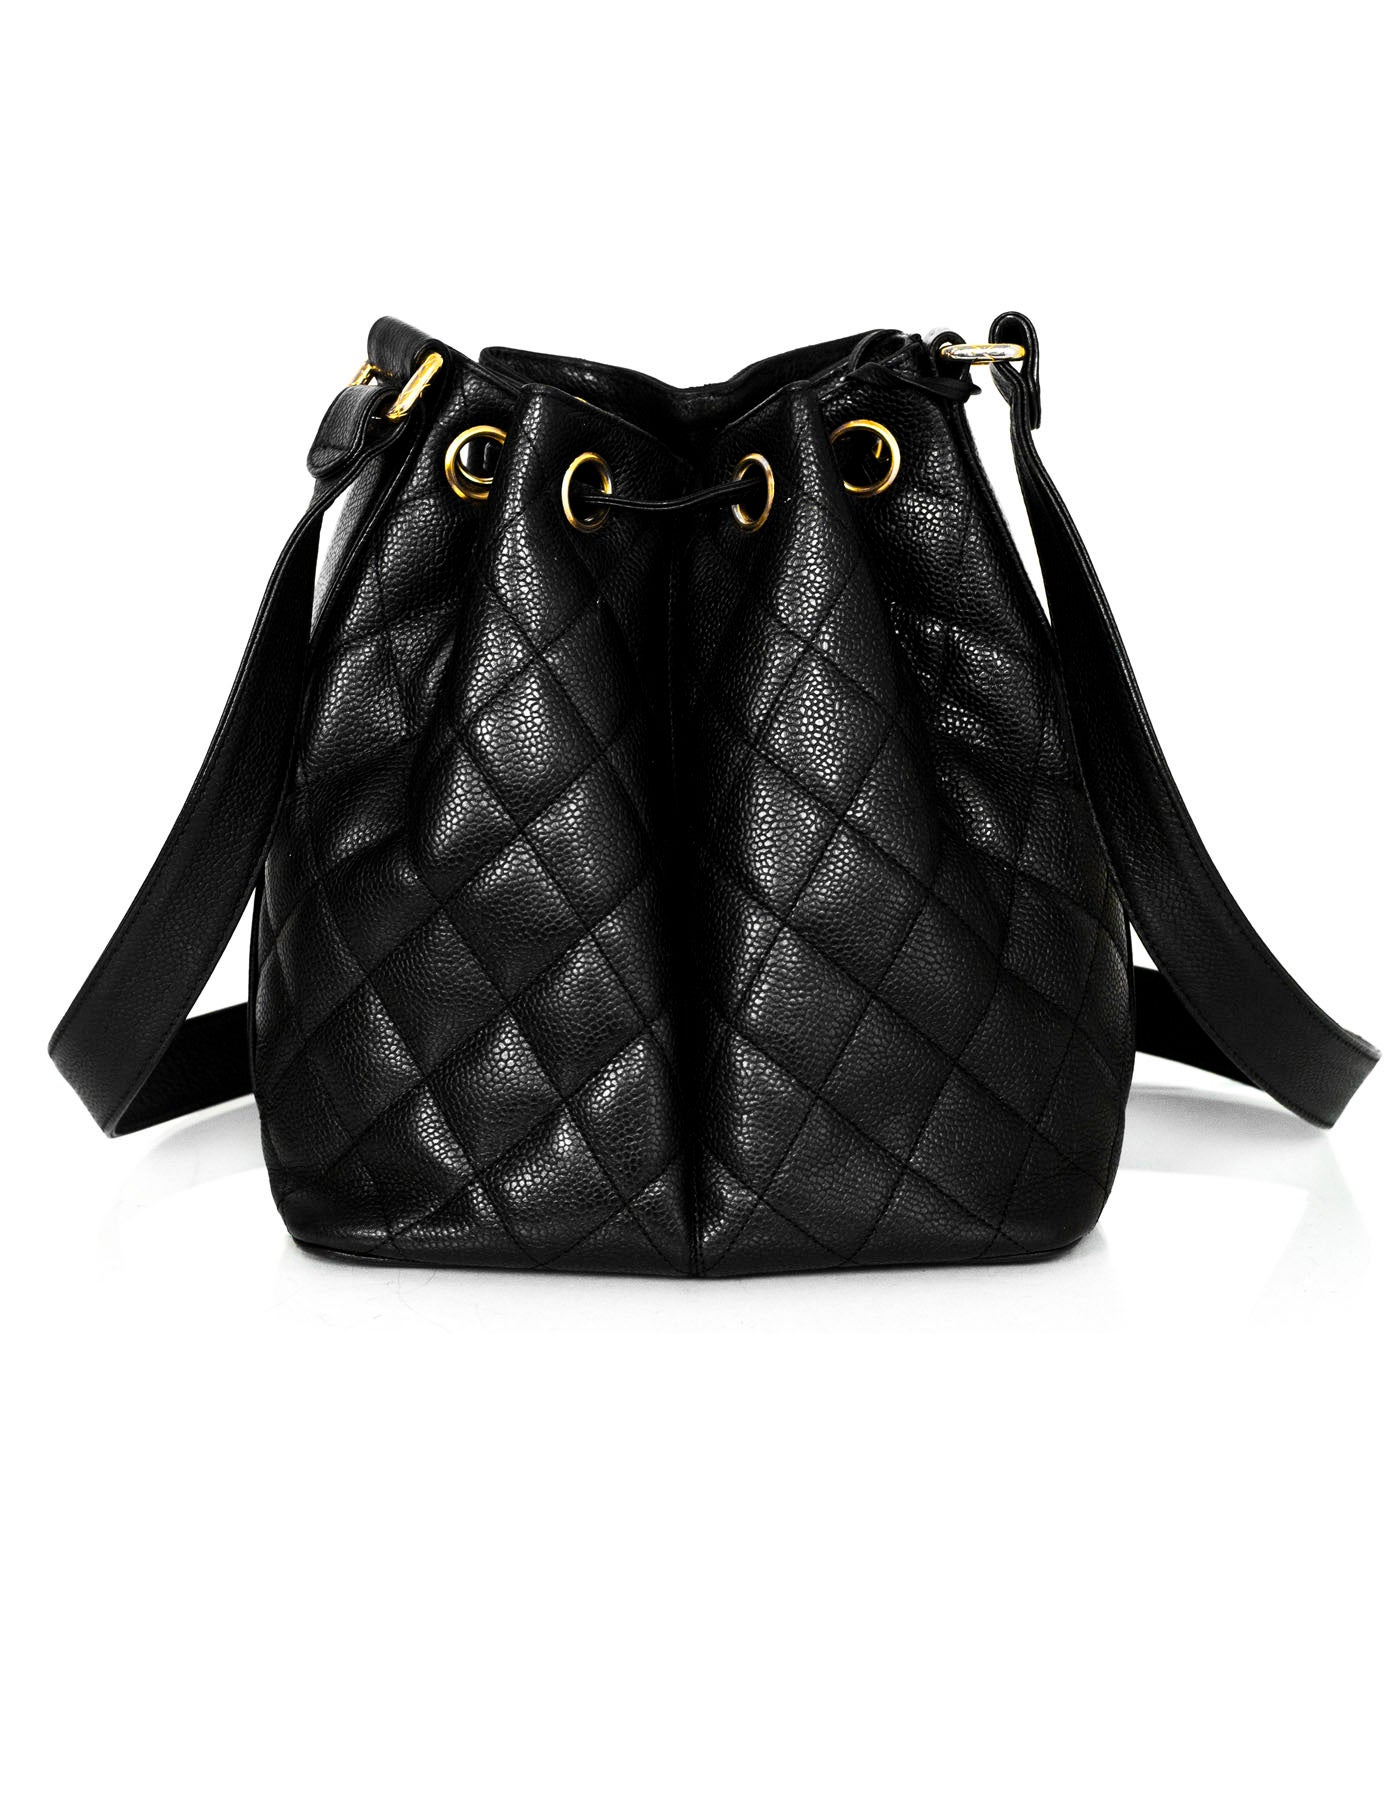 5e8a07dfc40b Chanel '90s Vintage Black Caviar Quilted Bucket Bag For Sale at 1stdibs